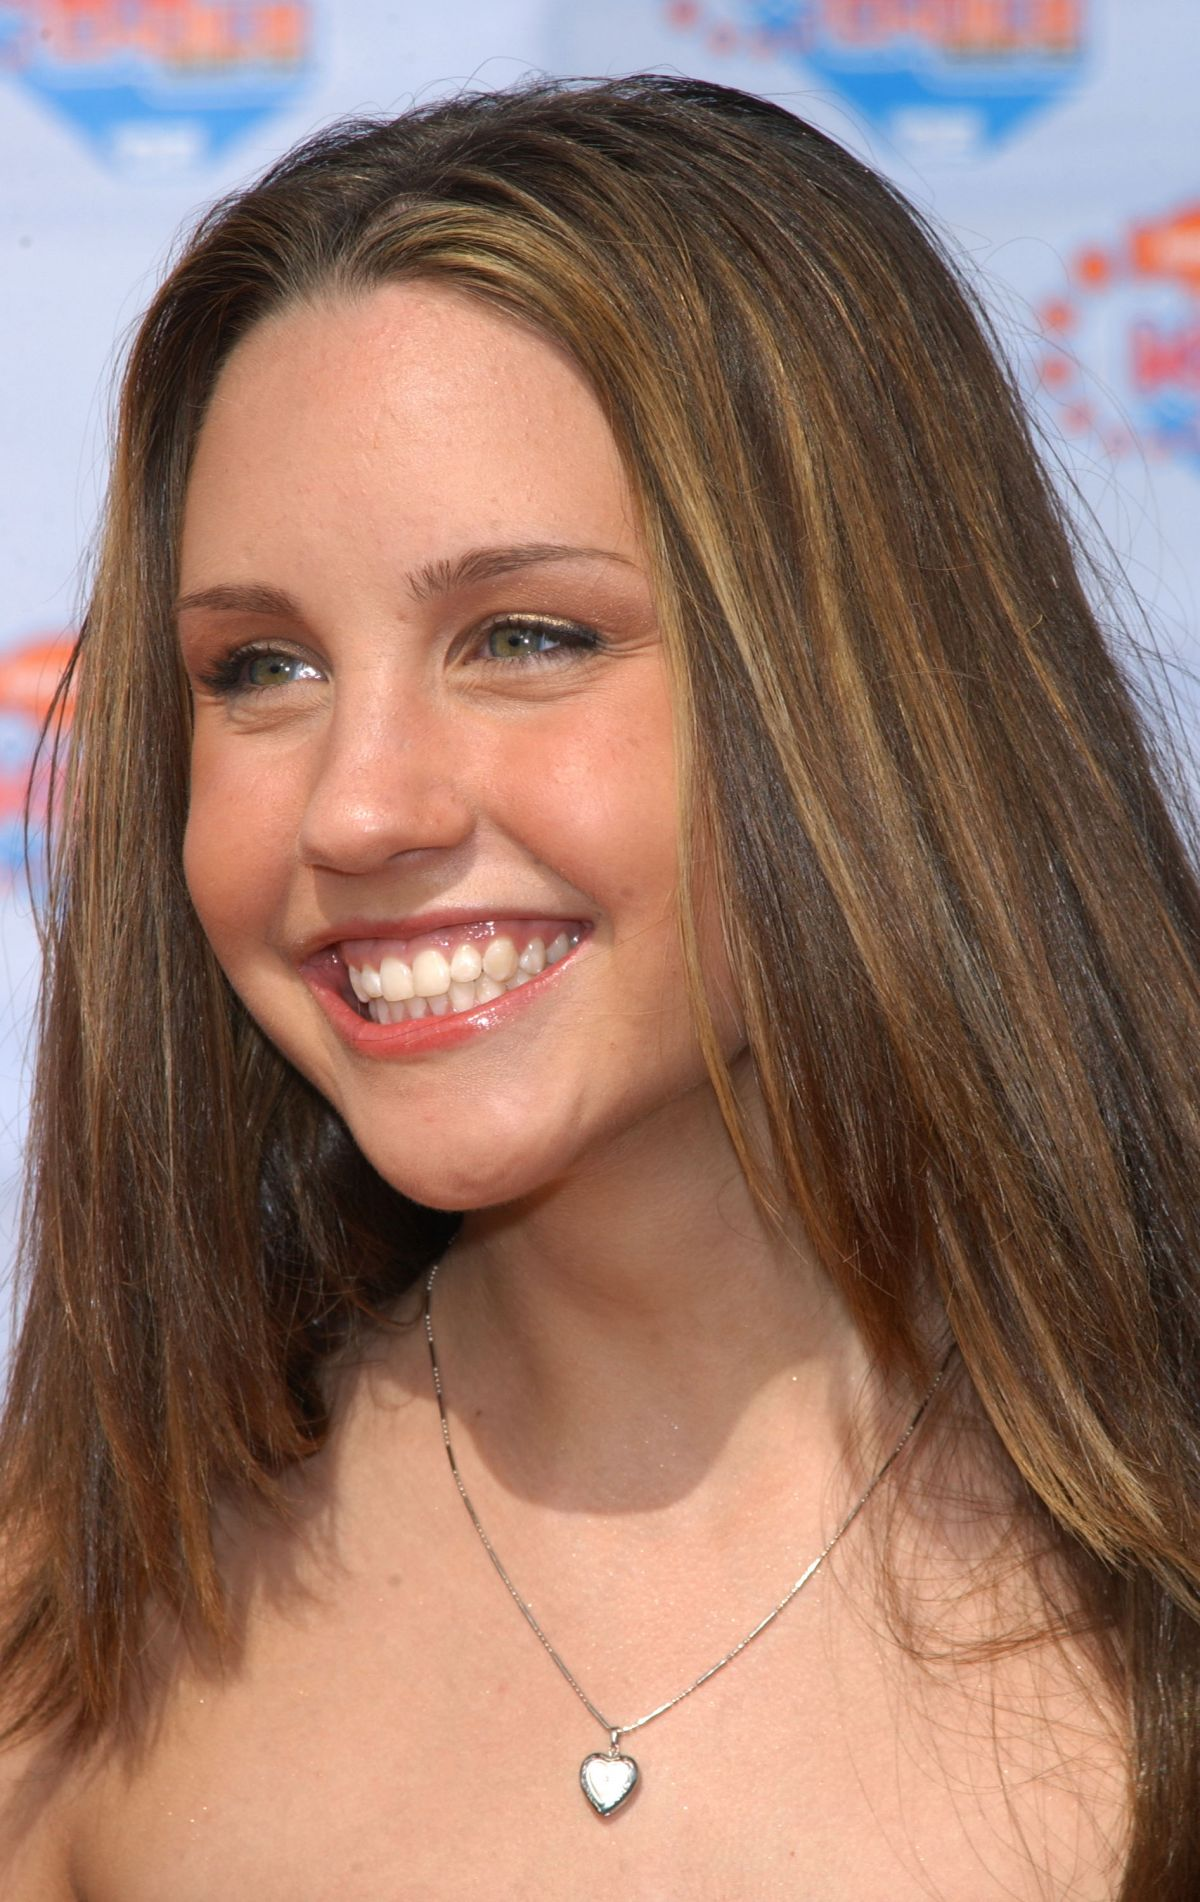 Best from the Past - AMANDA BYNES at 2002 Kids